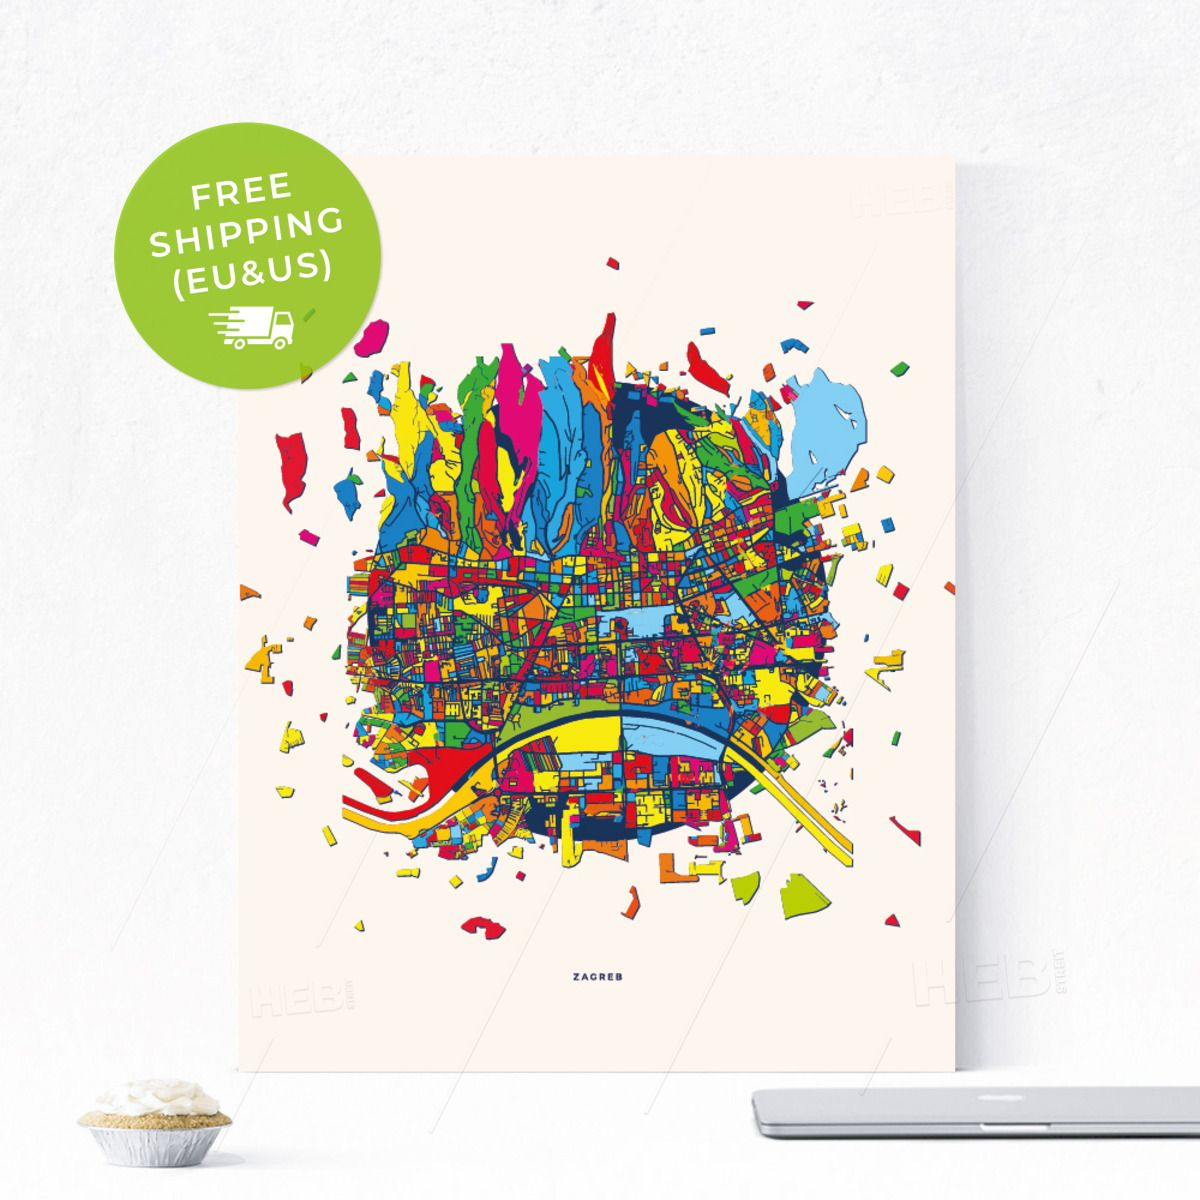 Zagreb Croatia Colourful Creative City Map Poster Exploding Map Confetti Map City Map Poster Map Poster City Map